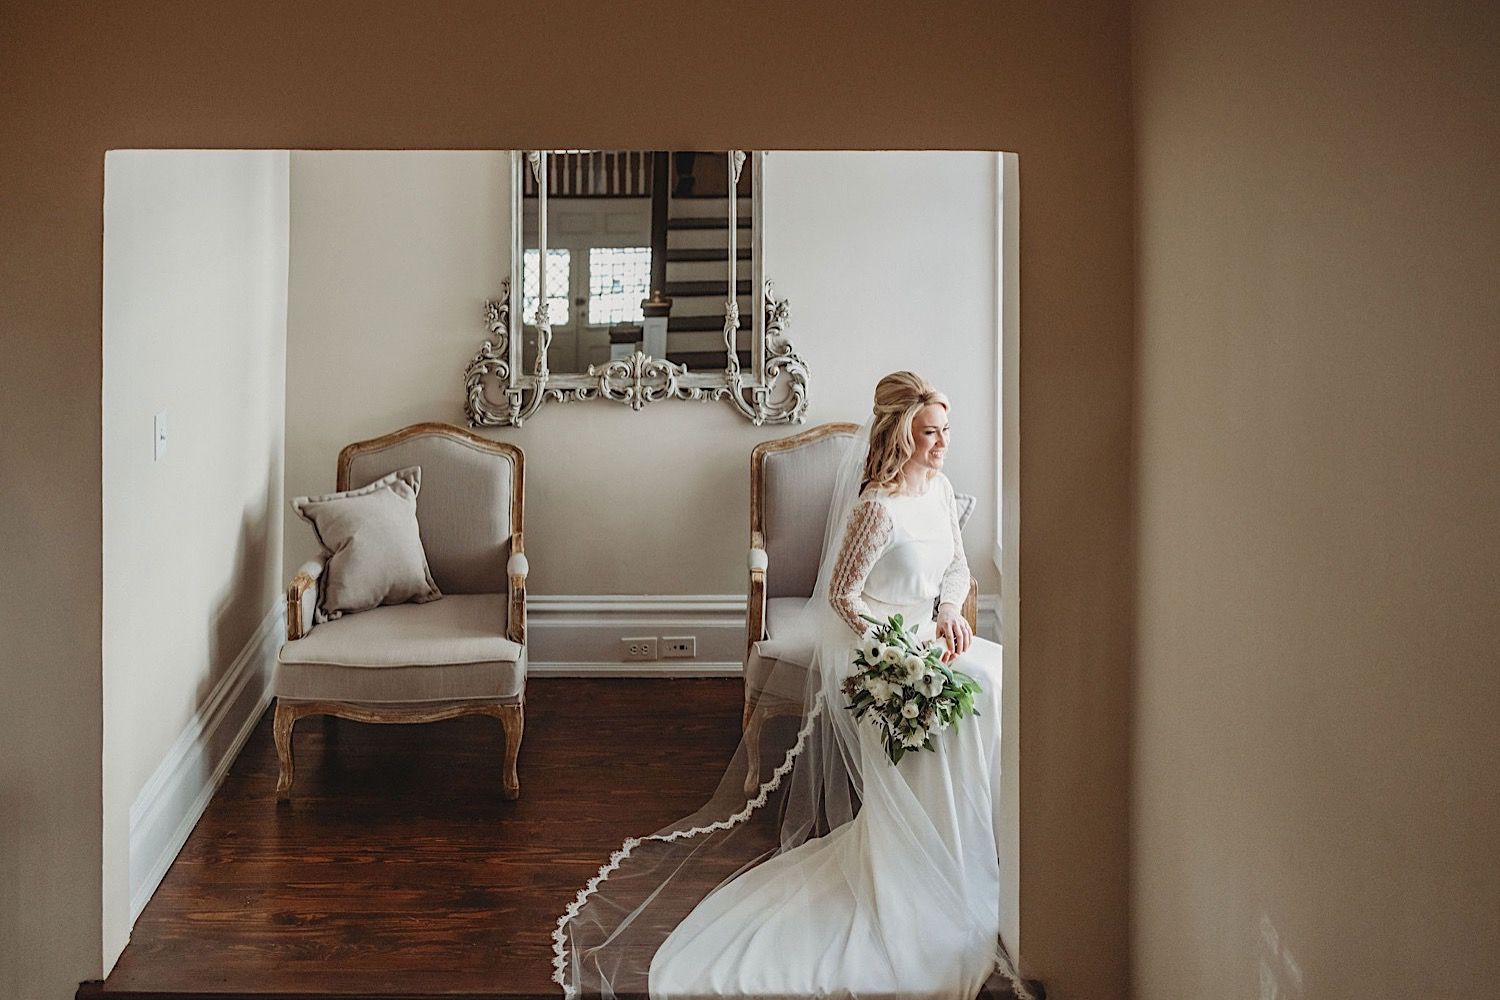 bride sitting in chair holding bouquet and looking out the window